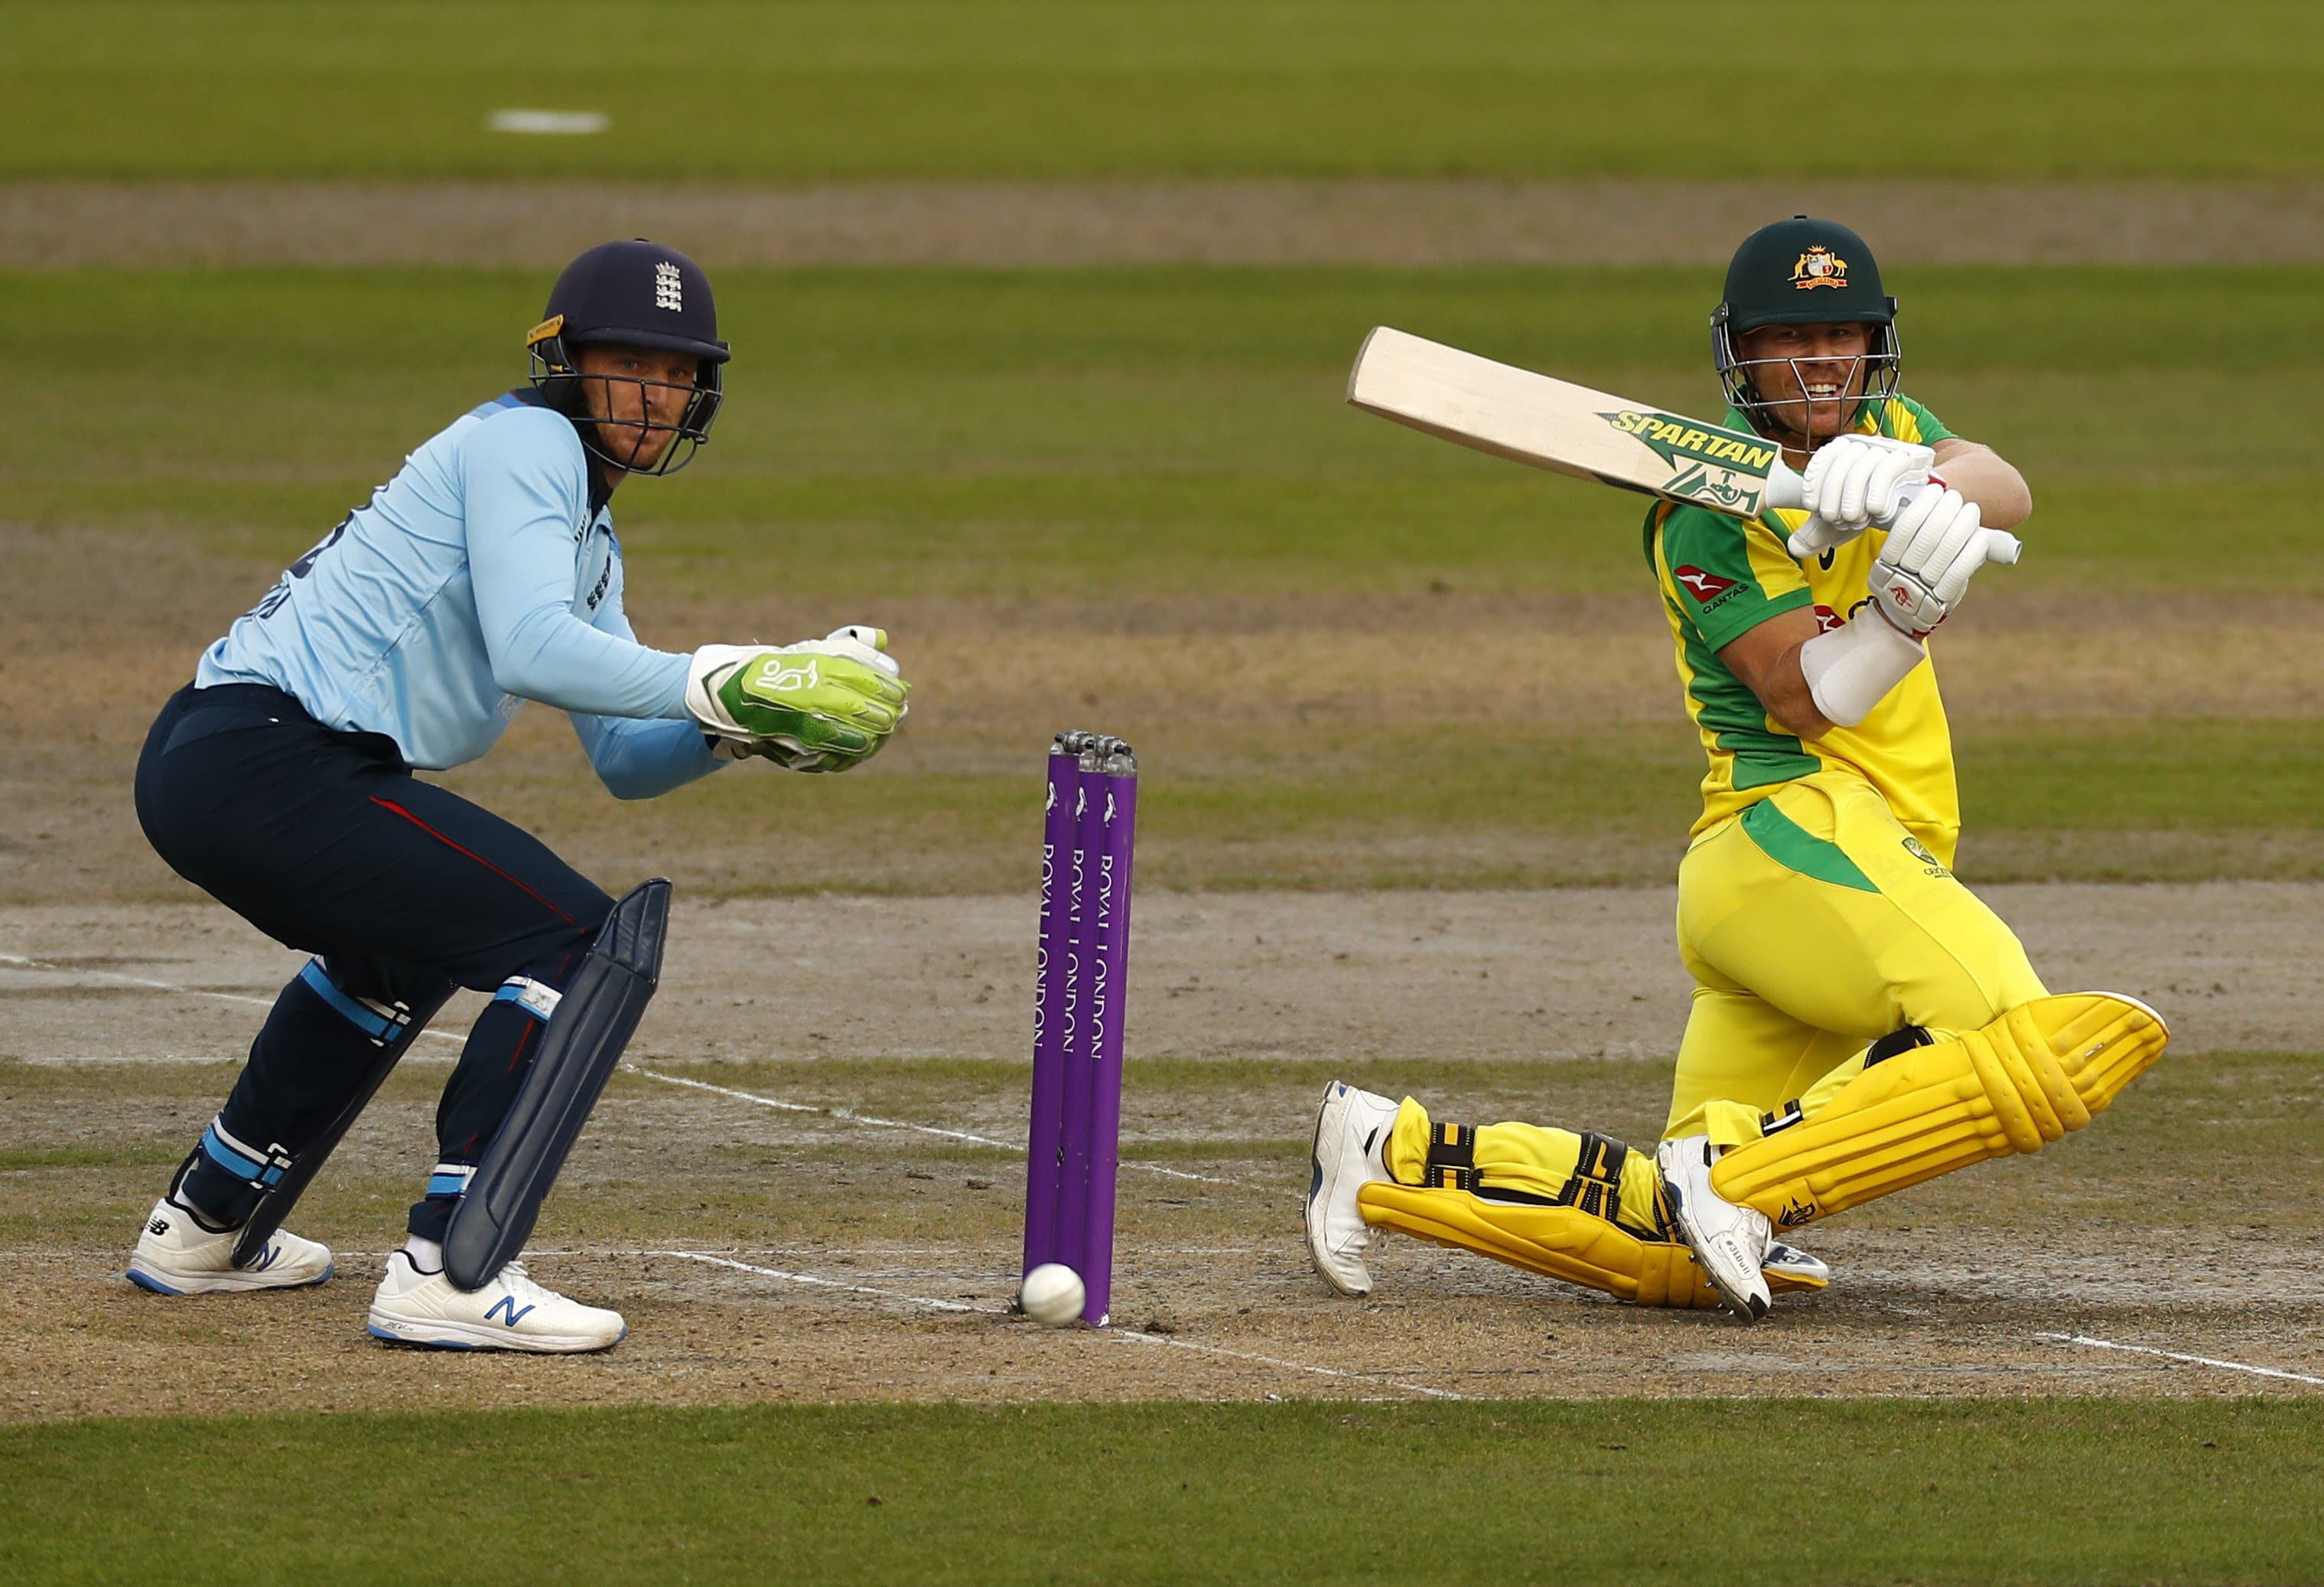 Australia's David Warner, right, plays a shot during the third ODI cricket match between England and Australia, at Old Trafford in Manchester, England, Wednesday, Sept. 16, 2020. (Jason Cairnduff/Pool via AP)